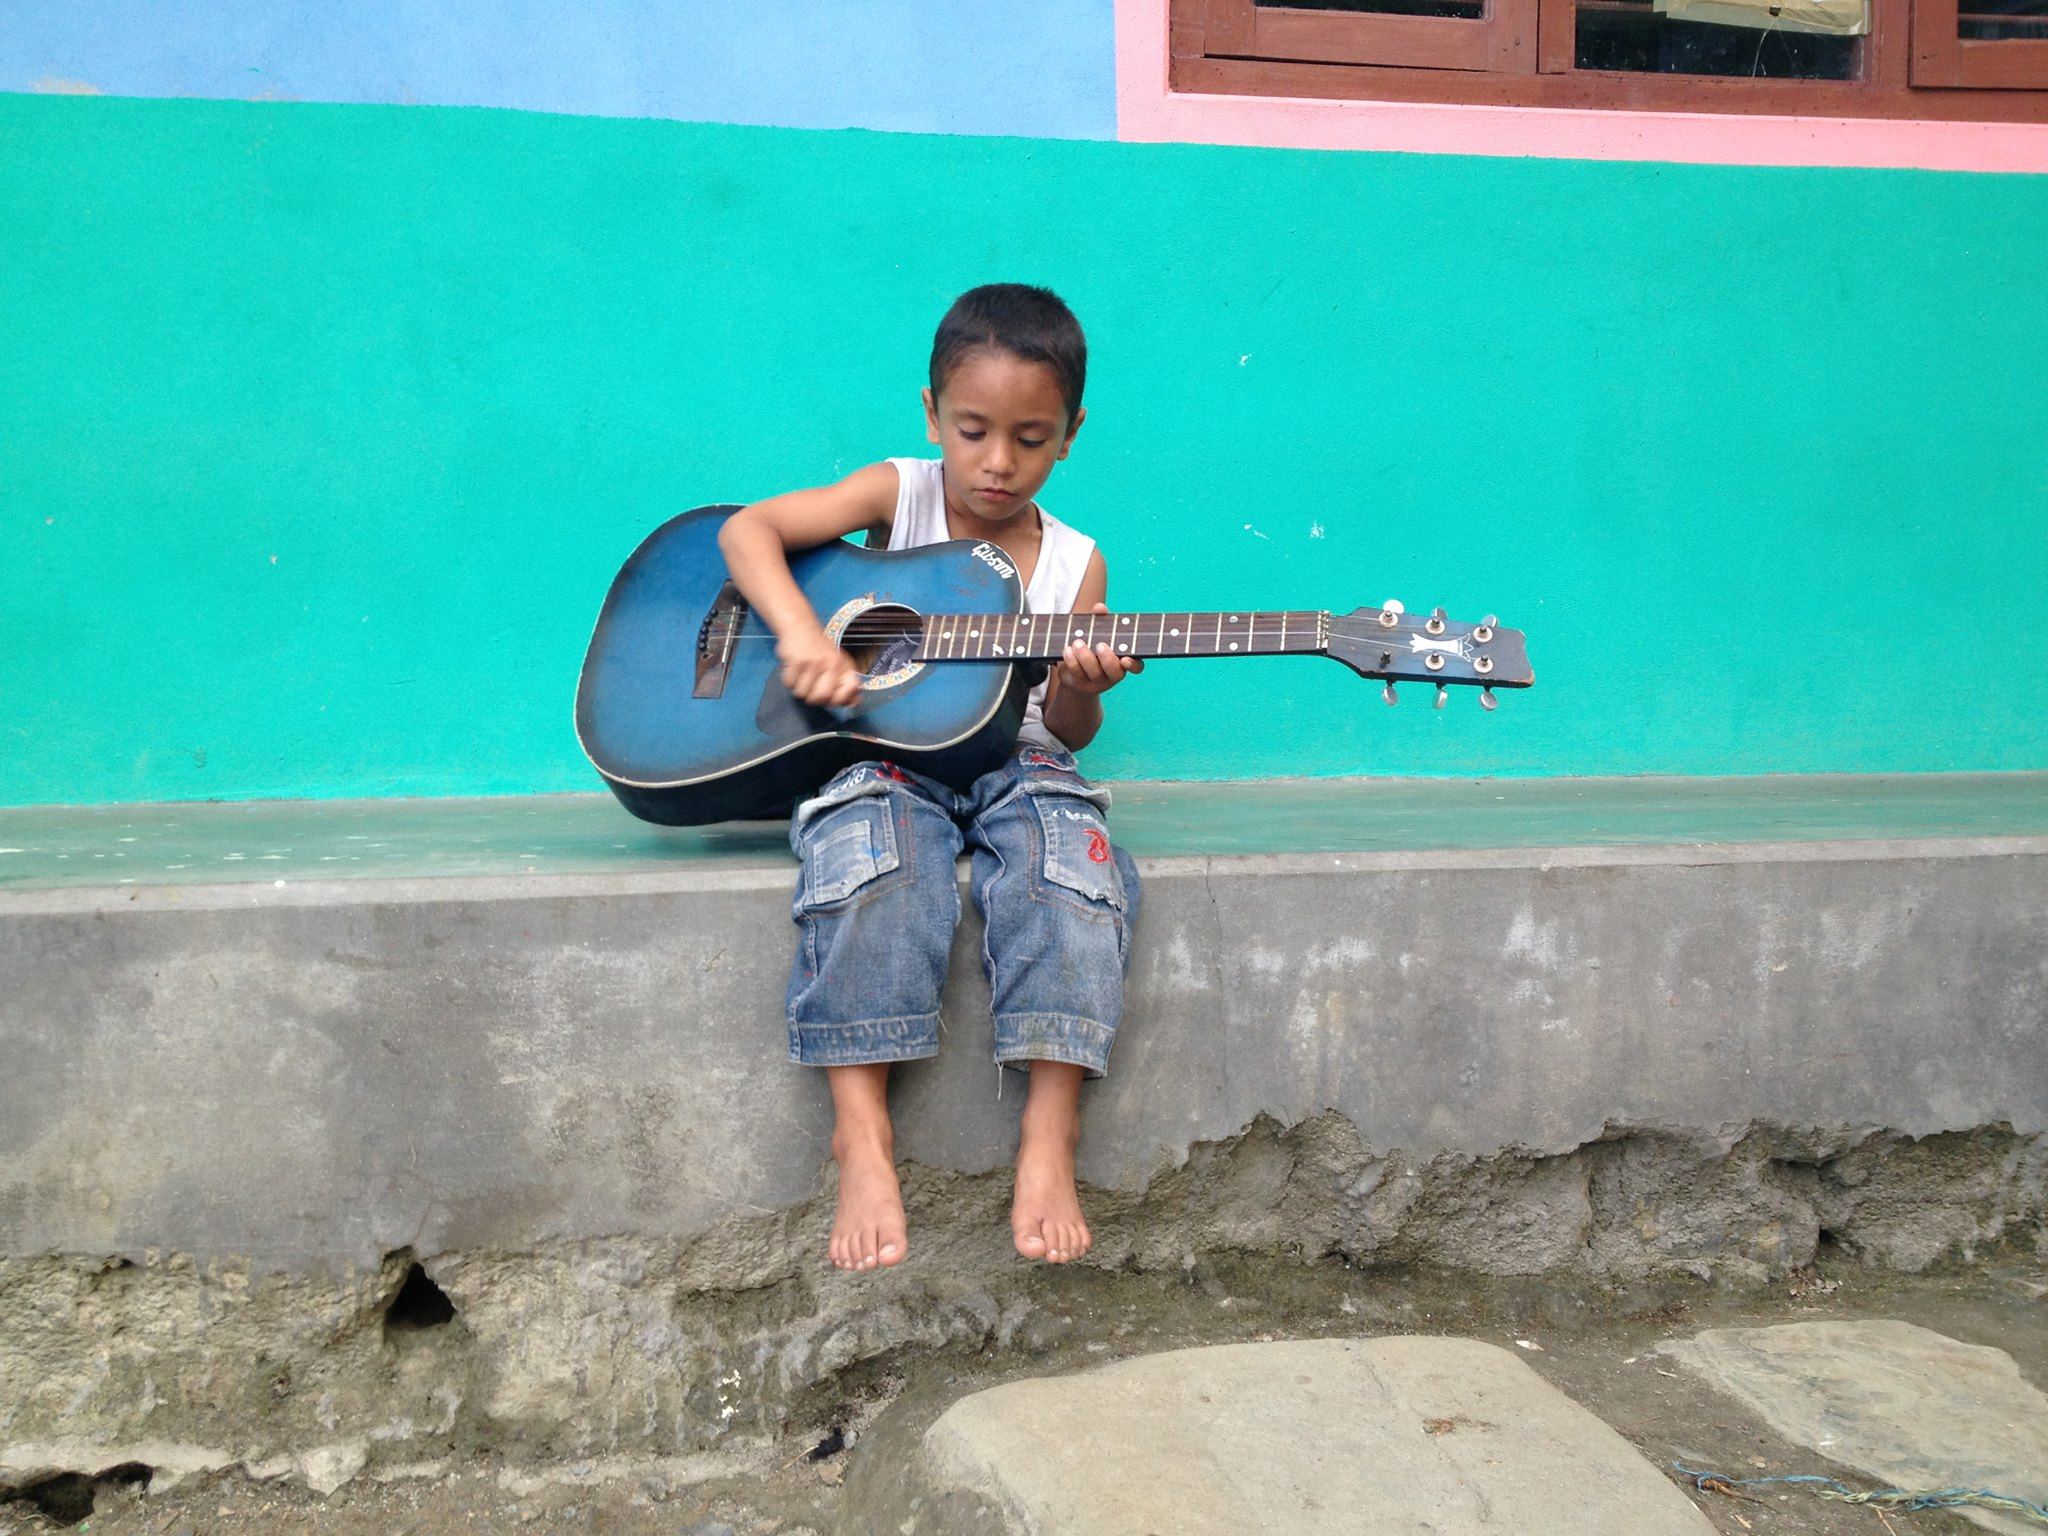 Ashim playing the guitar